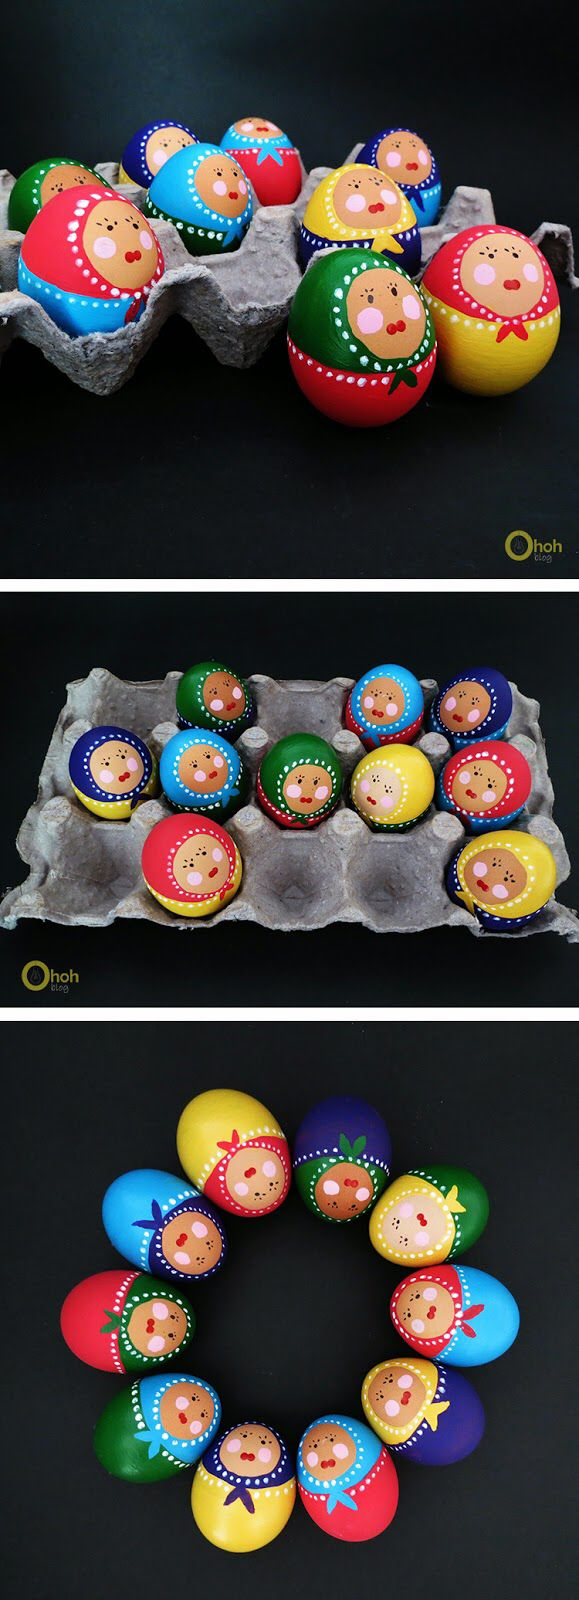 Babushka doll Easter eggs, adorable!